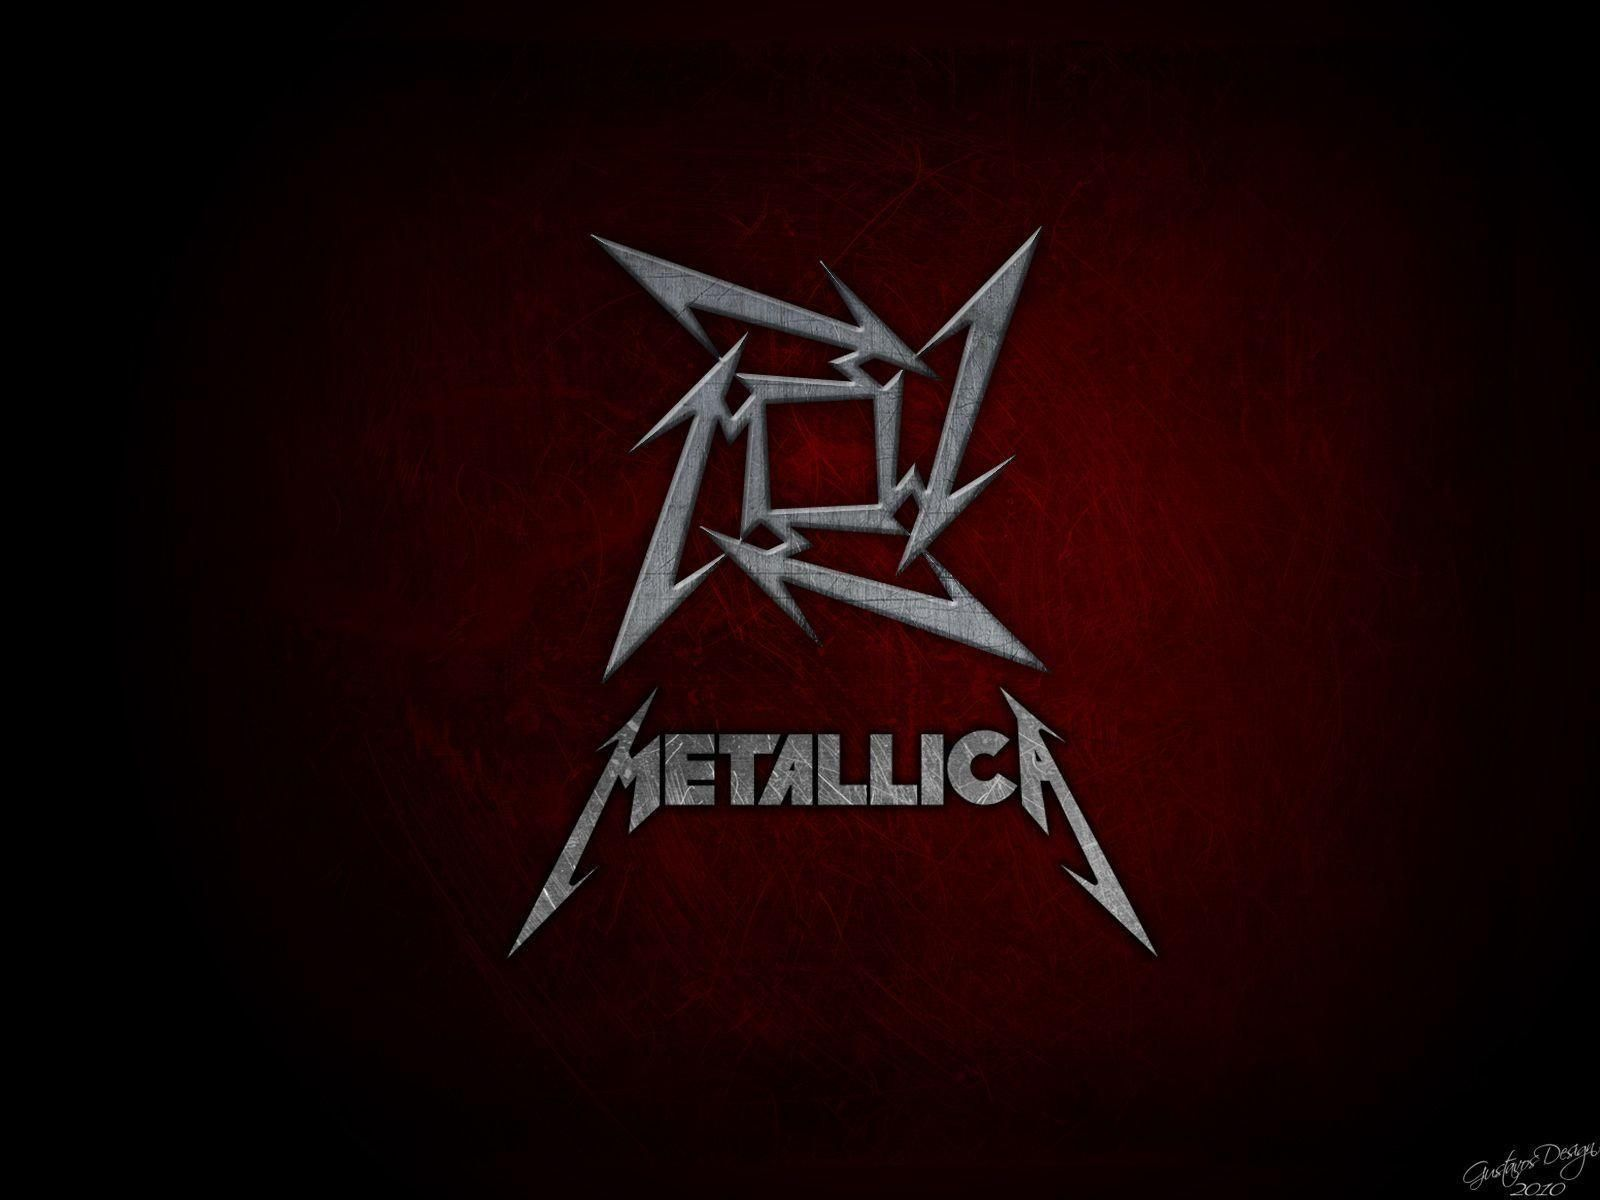 metallica logo wallpapers wallpaper cave Band wallpapers